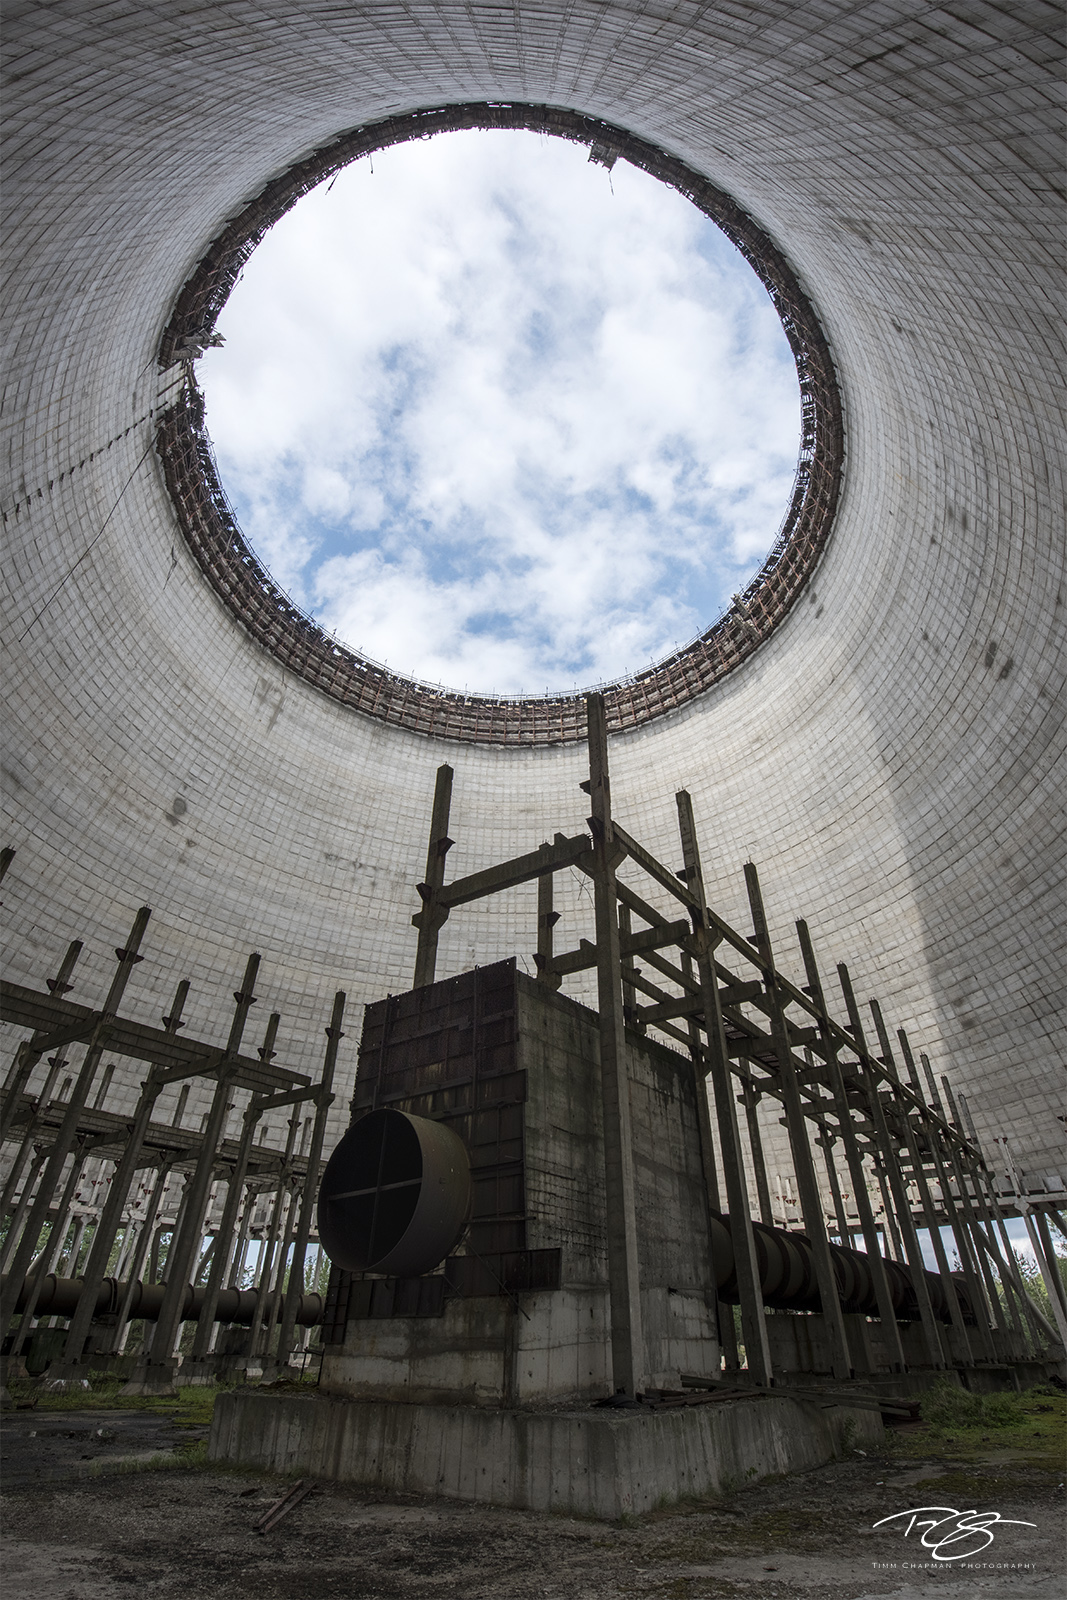 chernobyl, chornobyl, pripyat, exclusion zone, abandoned, forgotten, wasteland, radioactive, decay, peeling paint, cooling tower, power plant, nuclear power, reactor 4, power station, photo